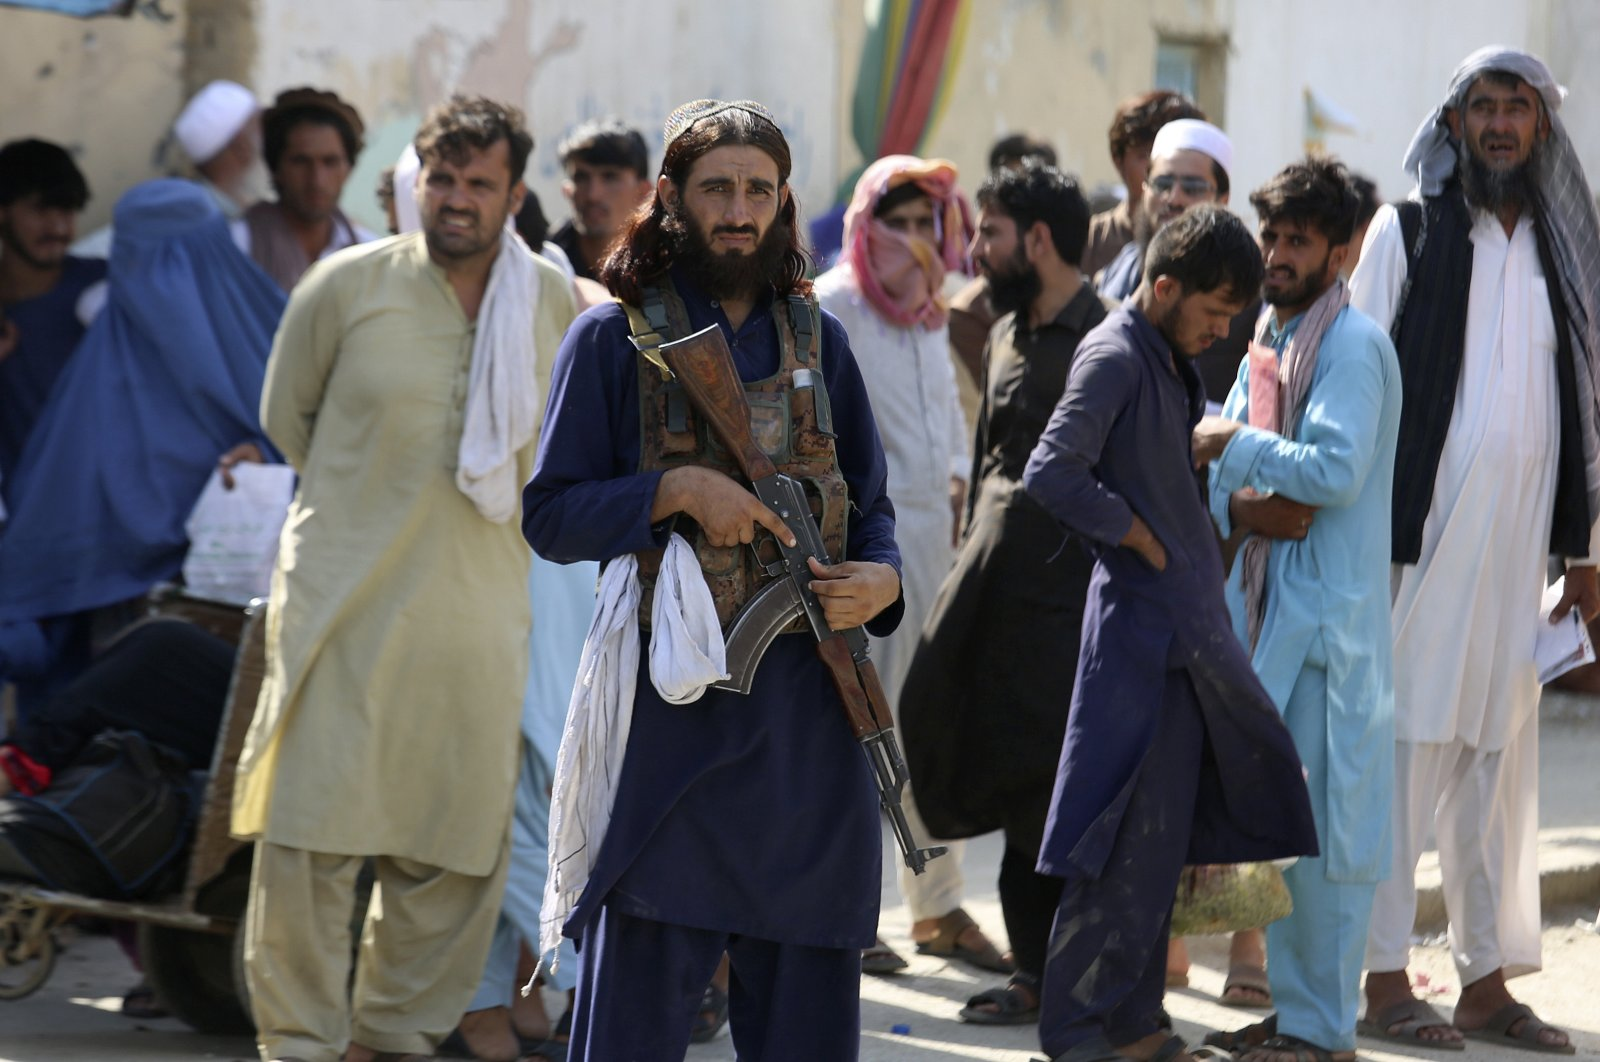 A Taliban fighter stands guard on Afghan side while people wait to cross at a border crossing point between Pakistan and Afghanistan, in Torkham, in Khyber district, Pakistan, Aug. 21, 2021. (AP Photo)